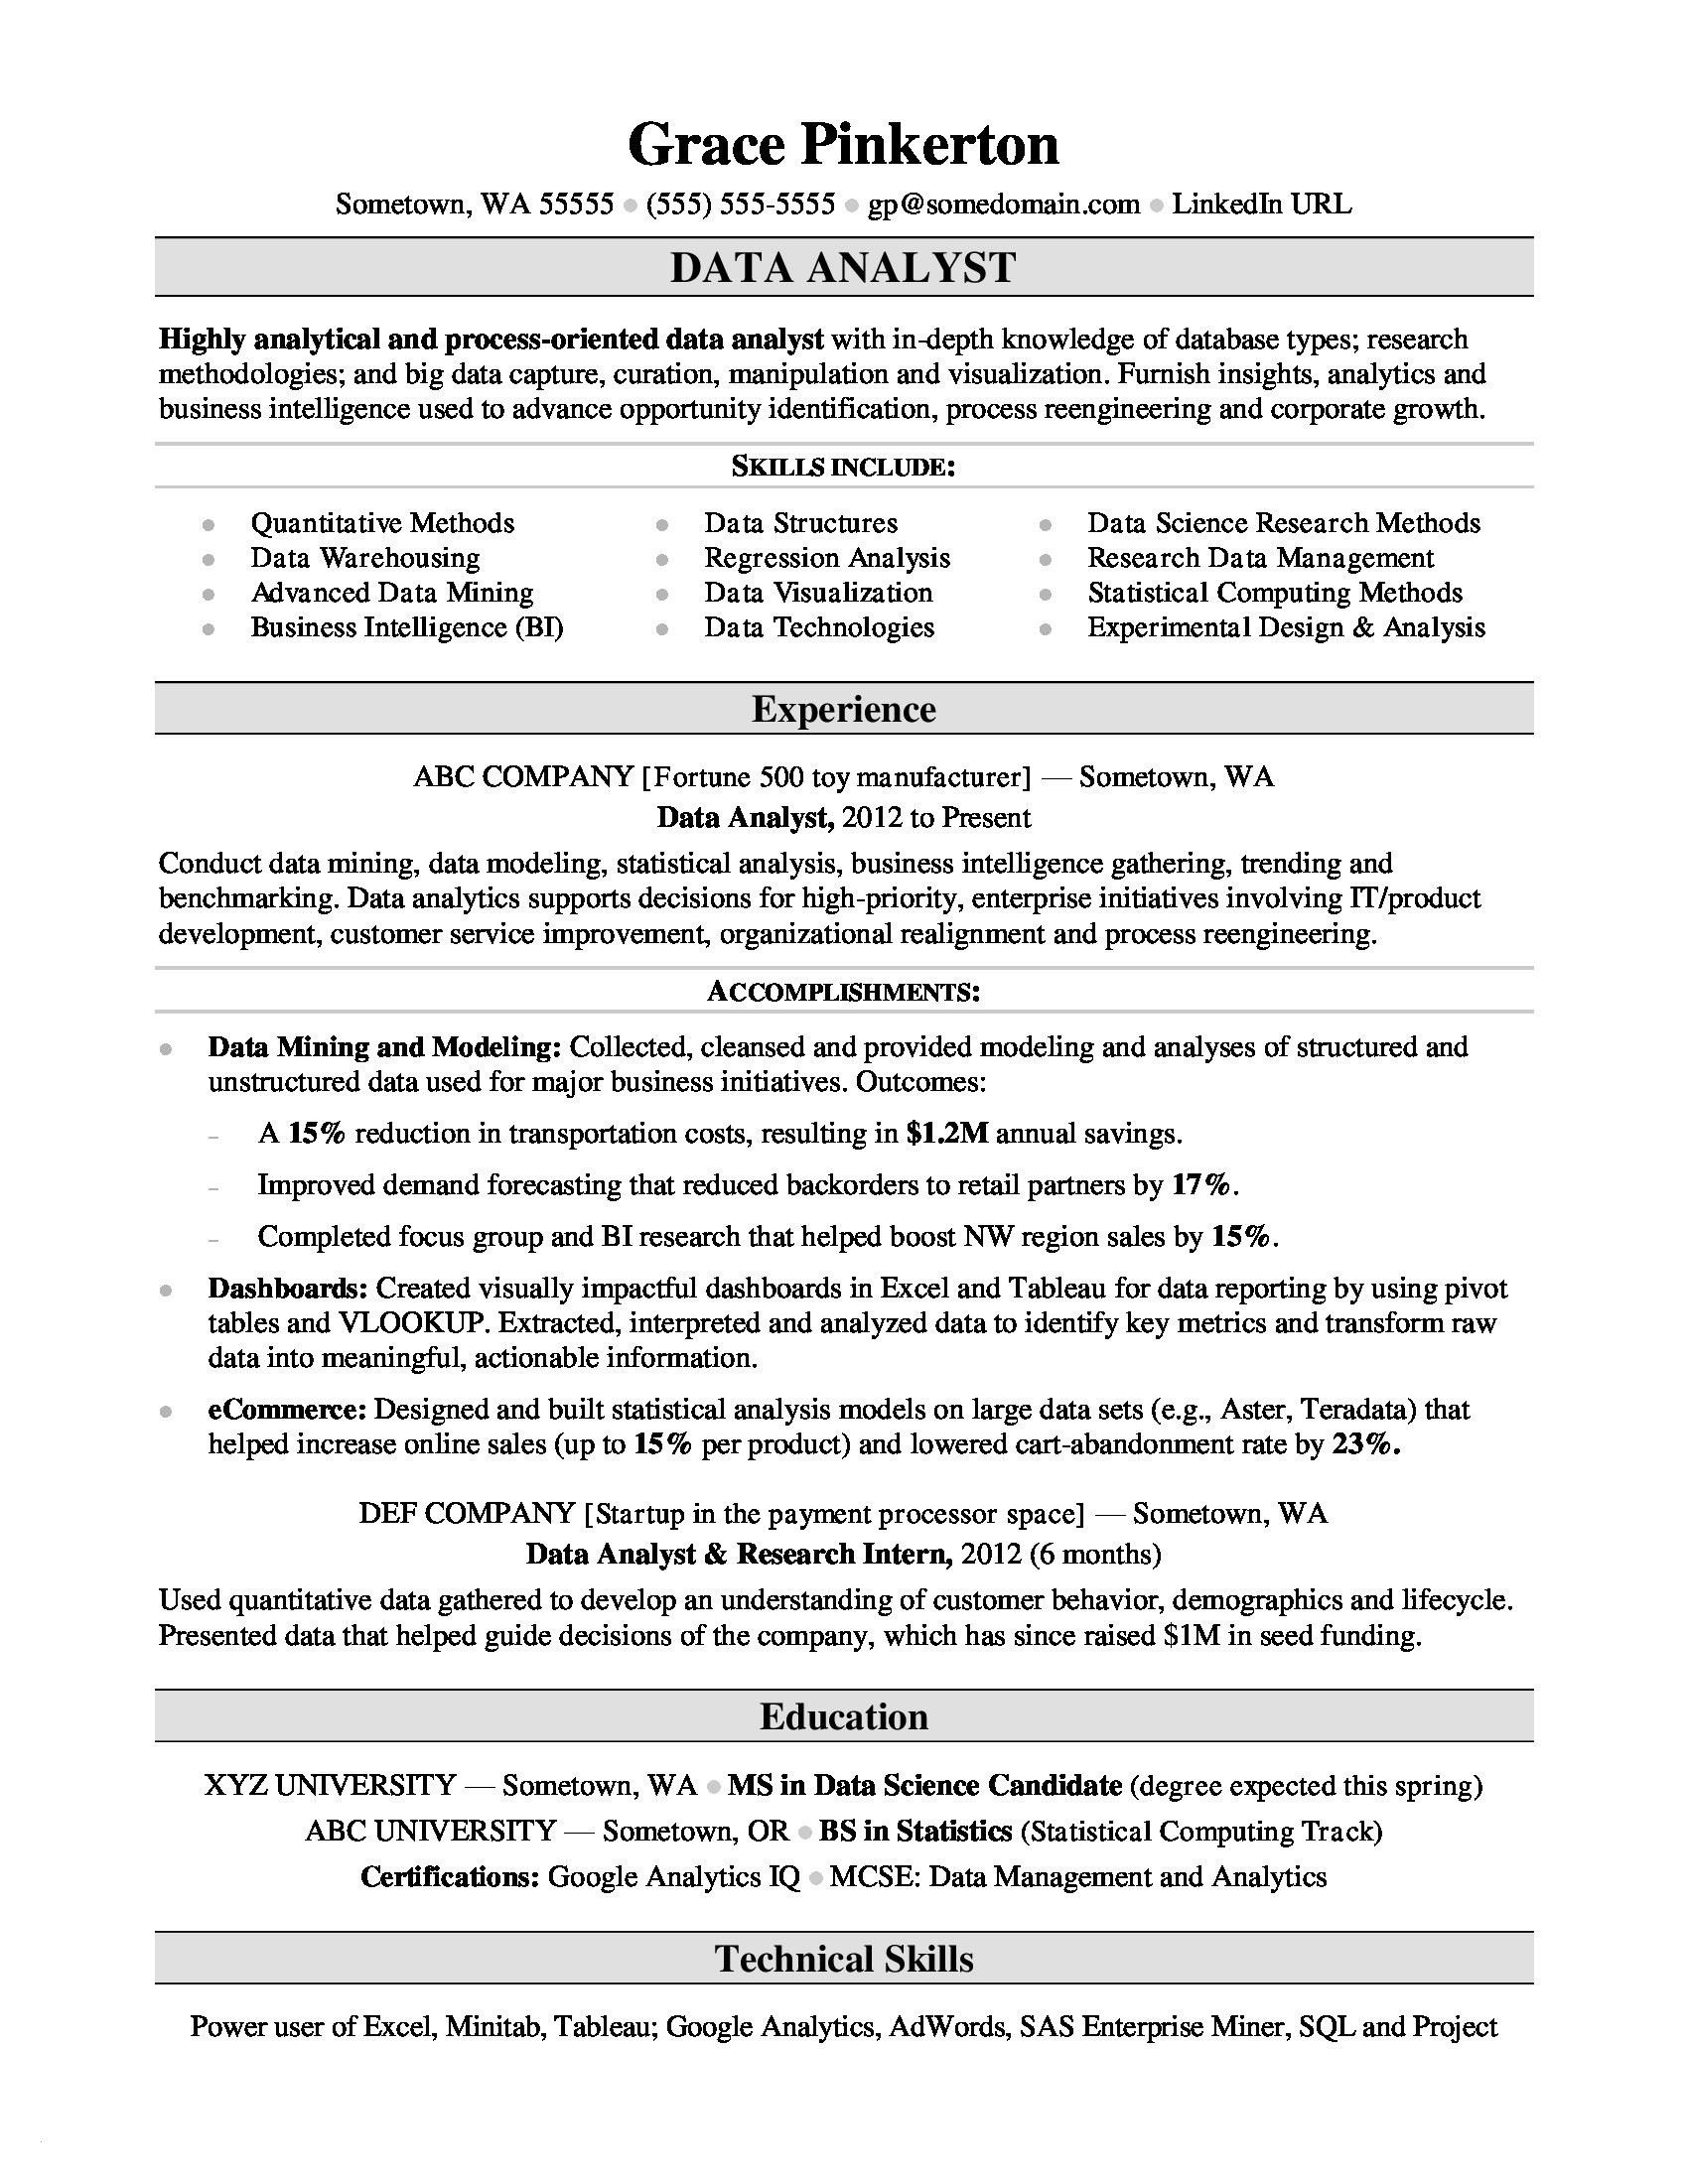 Healthcare Business Analyst Resume - Entry Level Business Analyst Resume New Awesome Healthcare Business